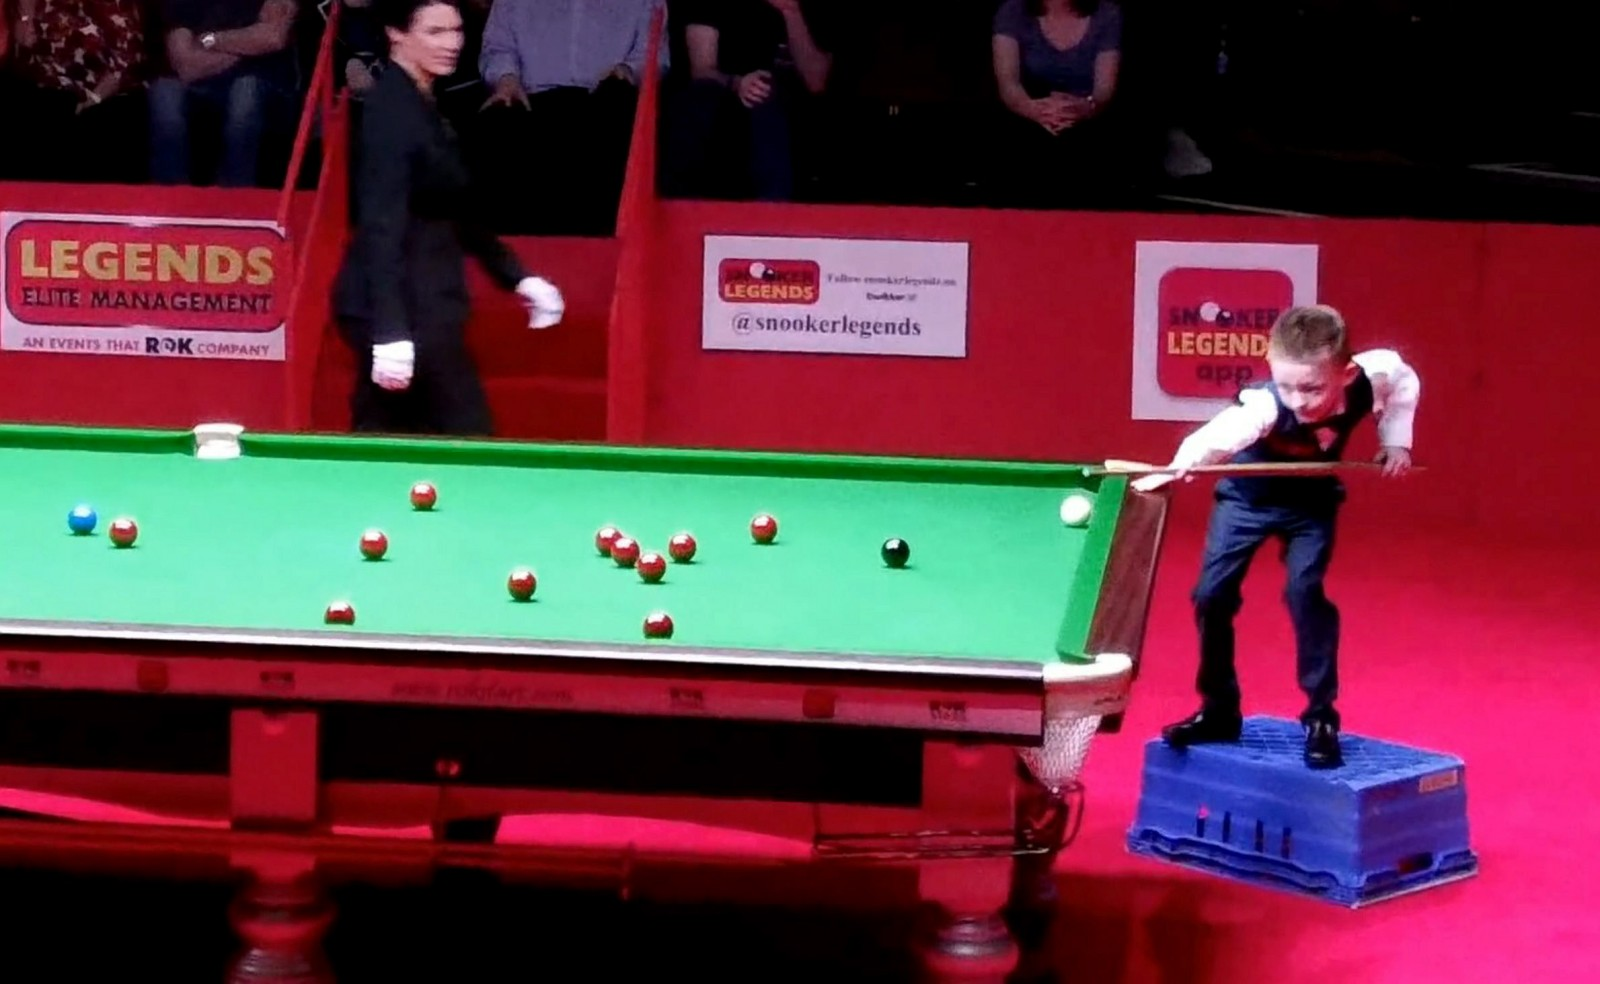 World goes snooker loopy for 8-year-old star who plays on an upturned vegetable crate!